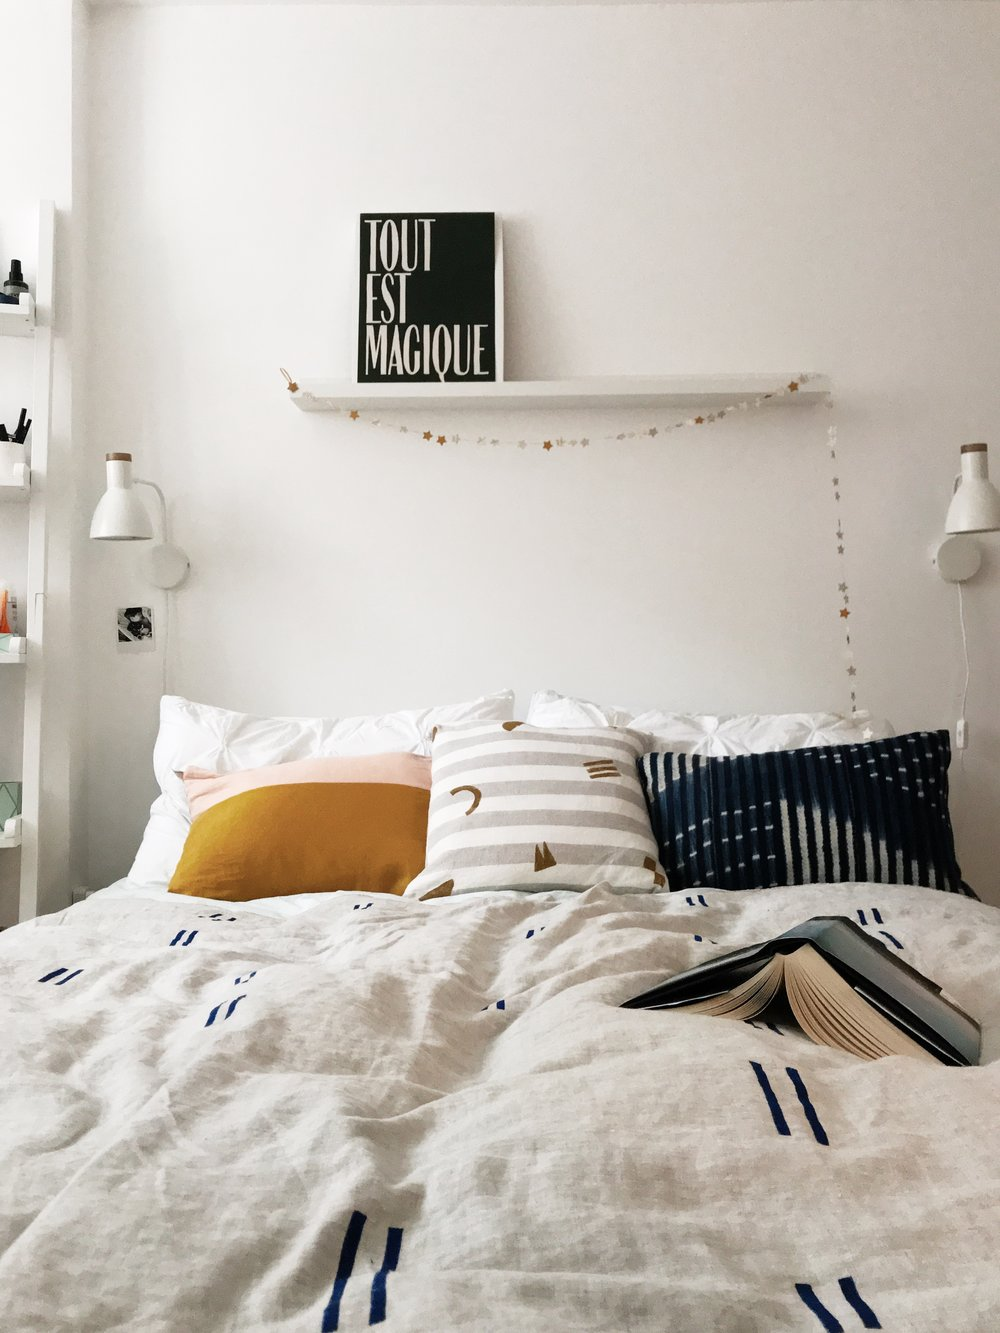 calm interiors | calm design | calm interiors spaces | calm interiors Apartment Therapy | calm interiors colour schemes | calm bedroom | calm bedroom decor | calm bedroom ideas | calm bedroom colours | calm bedroom zen | cosy bedroom | cozy bedroom | cosy bedroom romantic | cosy bedroom romantic bohemian